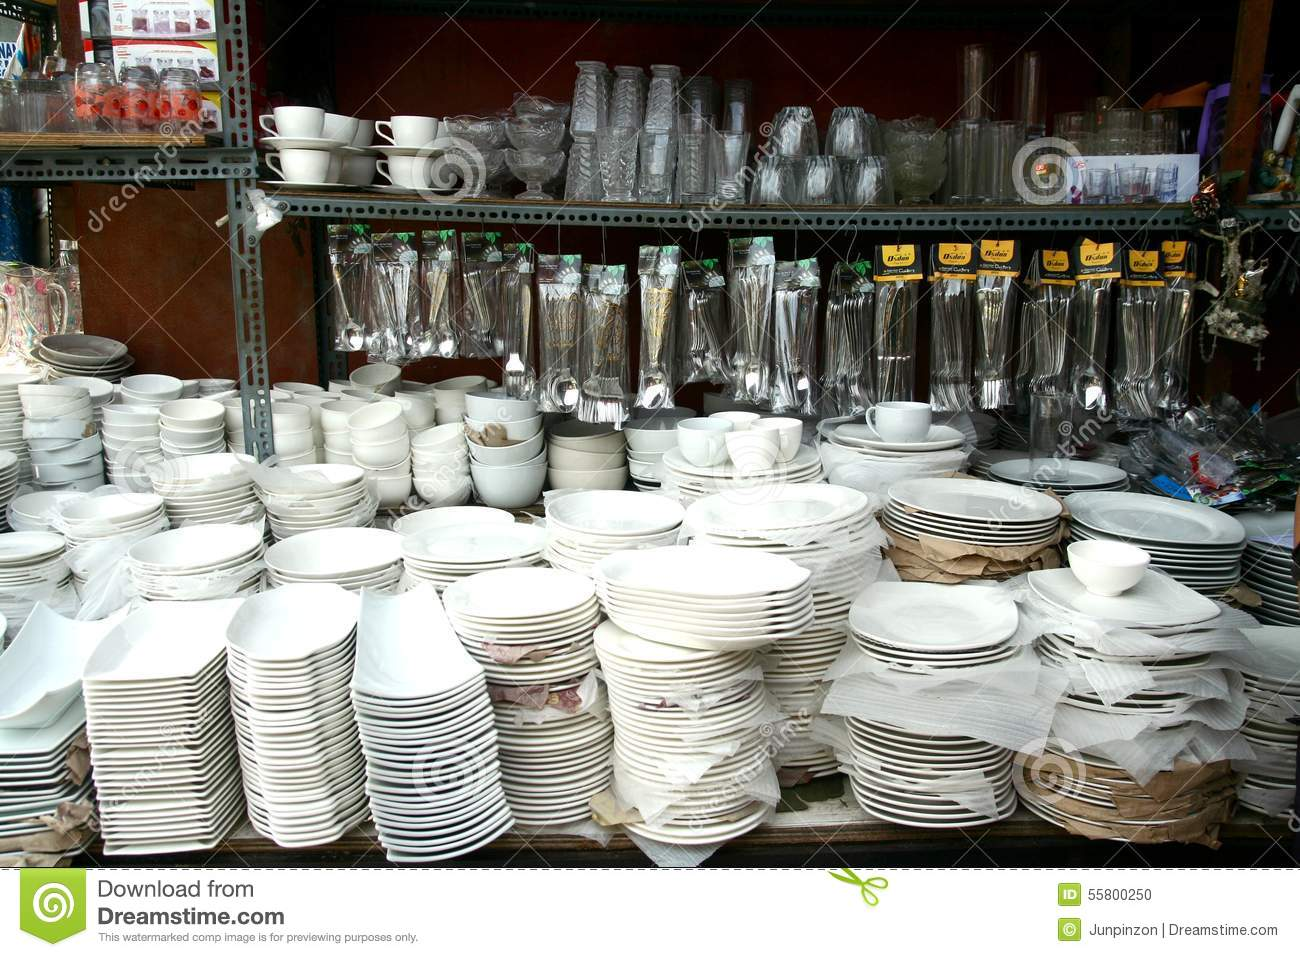 Plates Glassware Utensils And Other Kitchenware Sold At